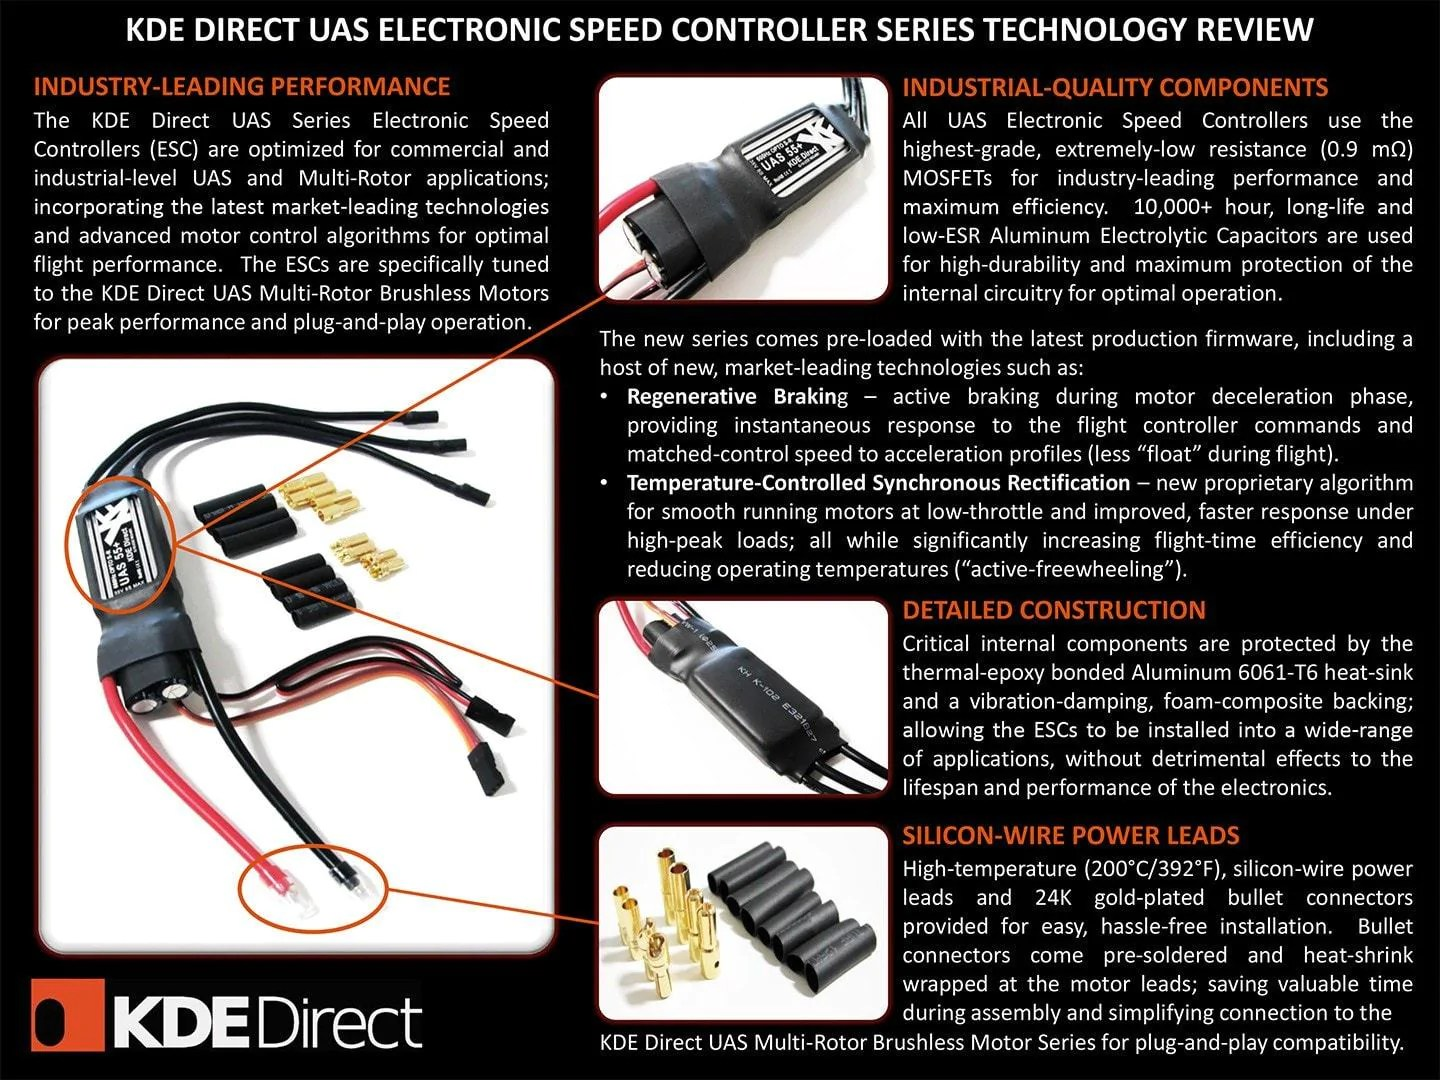 kdexf uas55 55a electronic speed controller esc for electric multi rotor  [ 1440 x 1080 Pixel ]